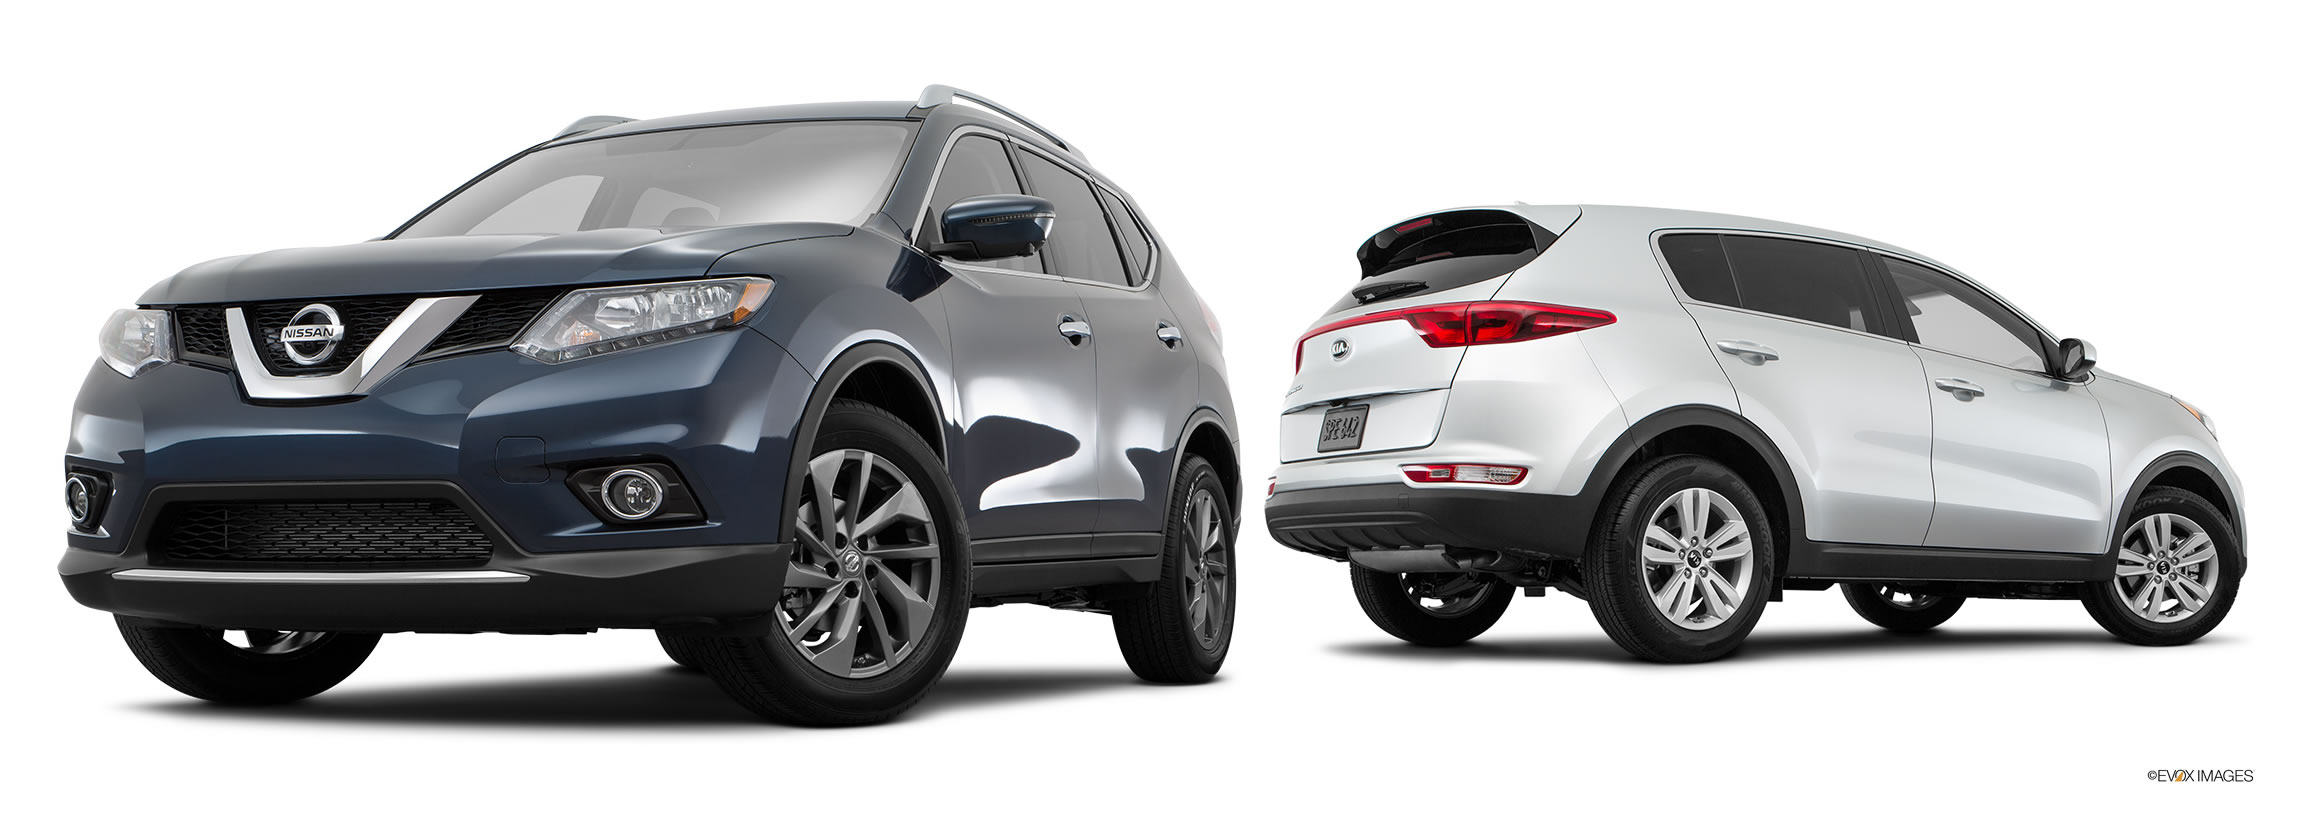 Best lease options for suv